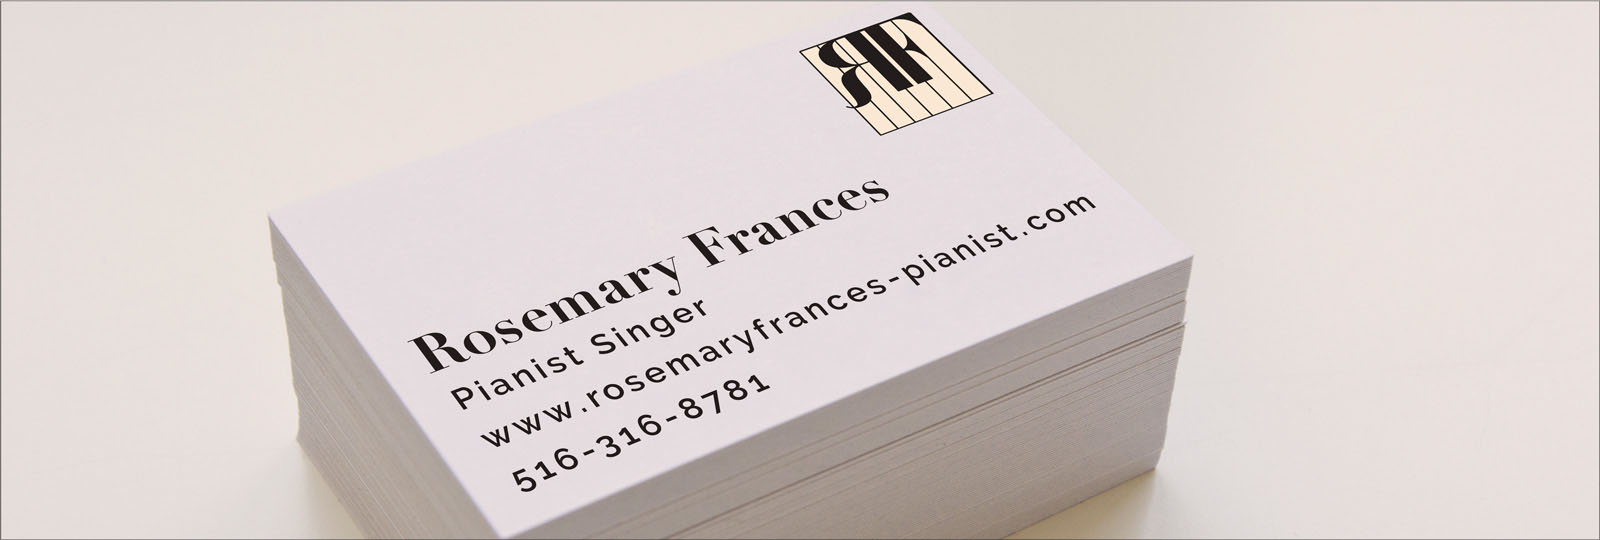 Rosemary Frances Business Card